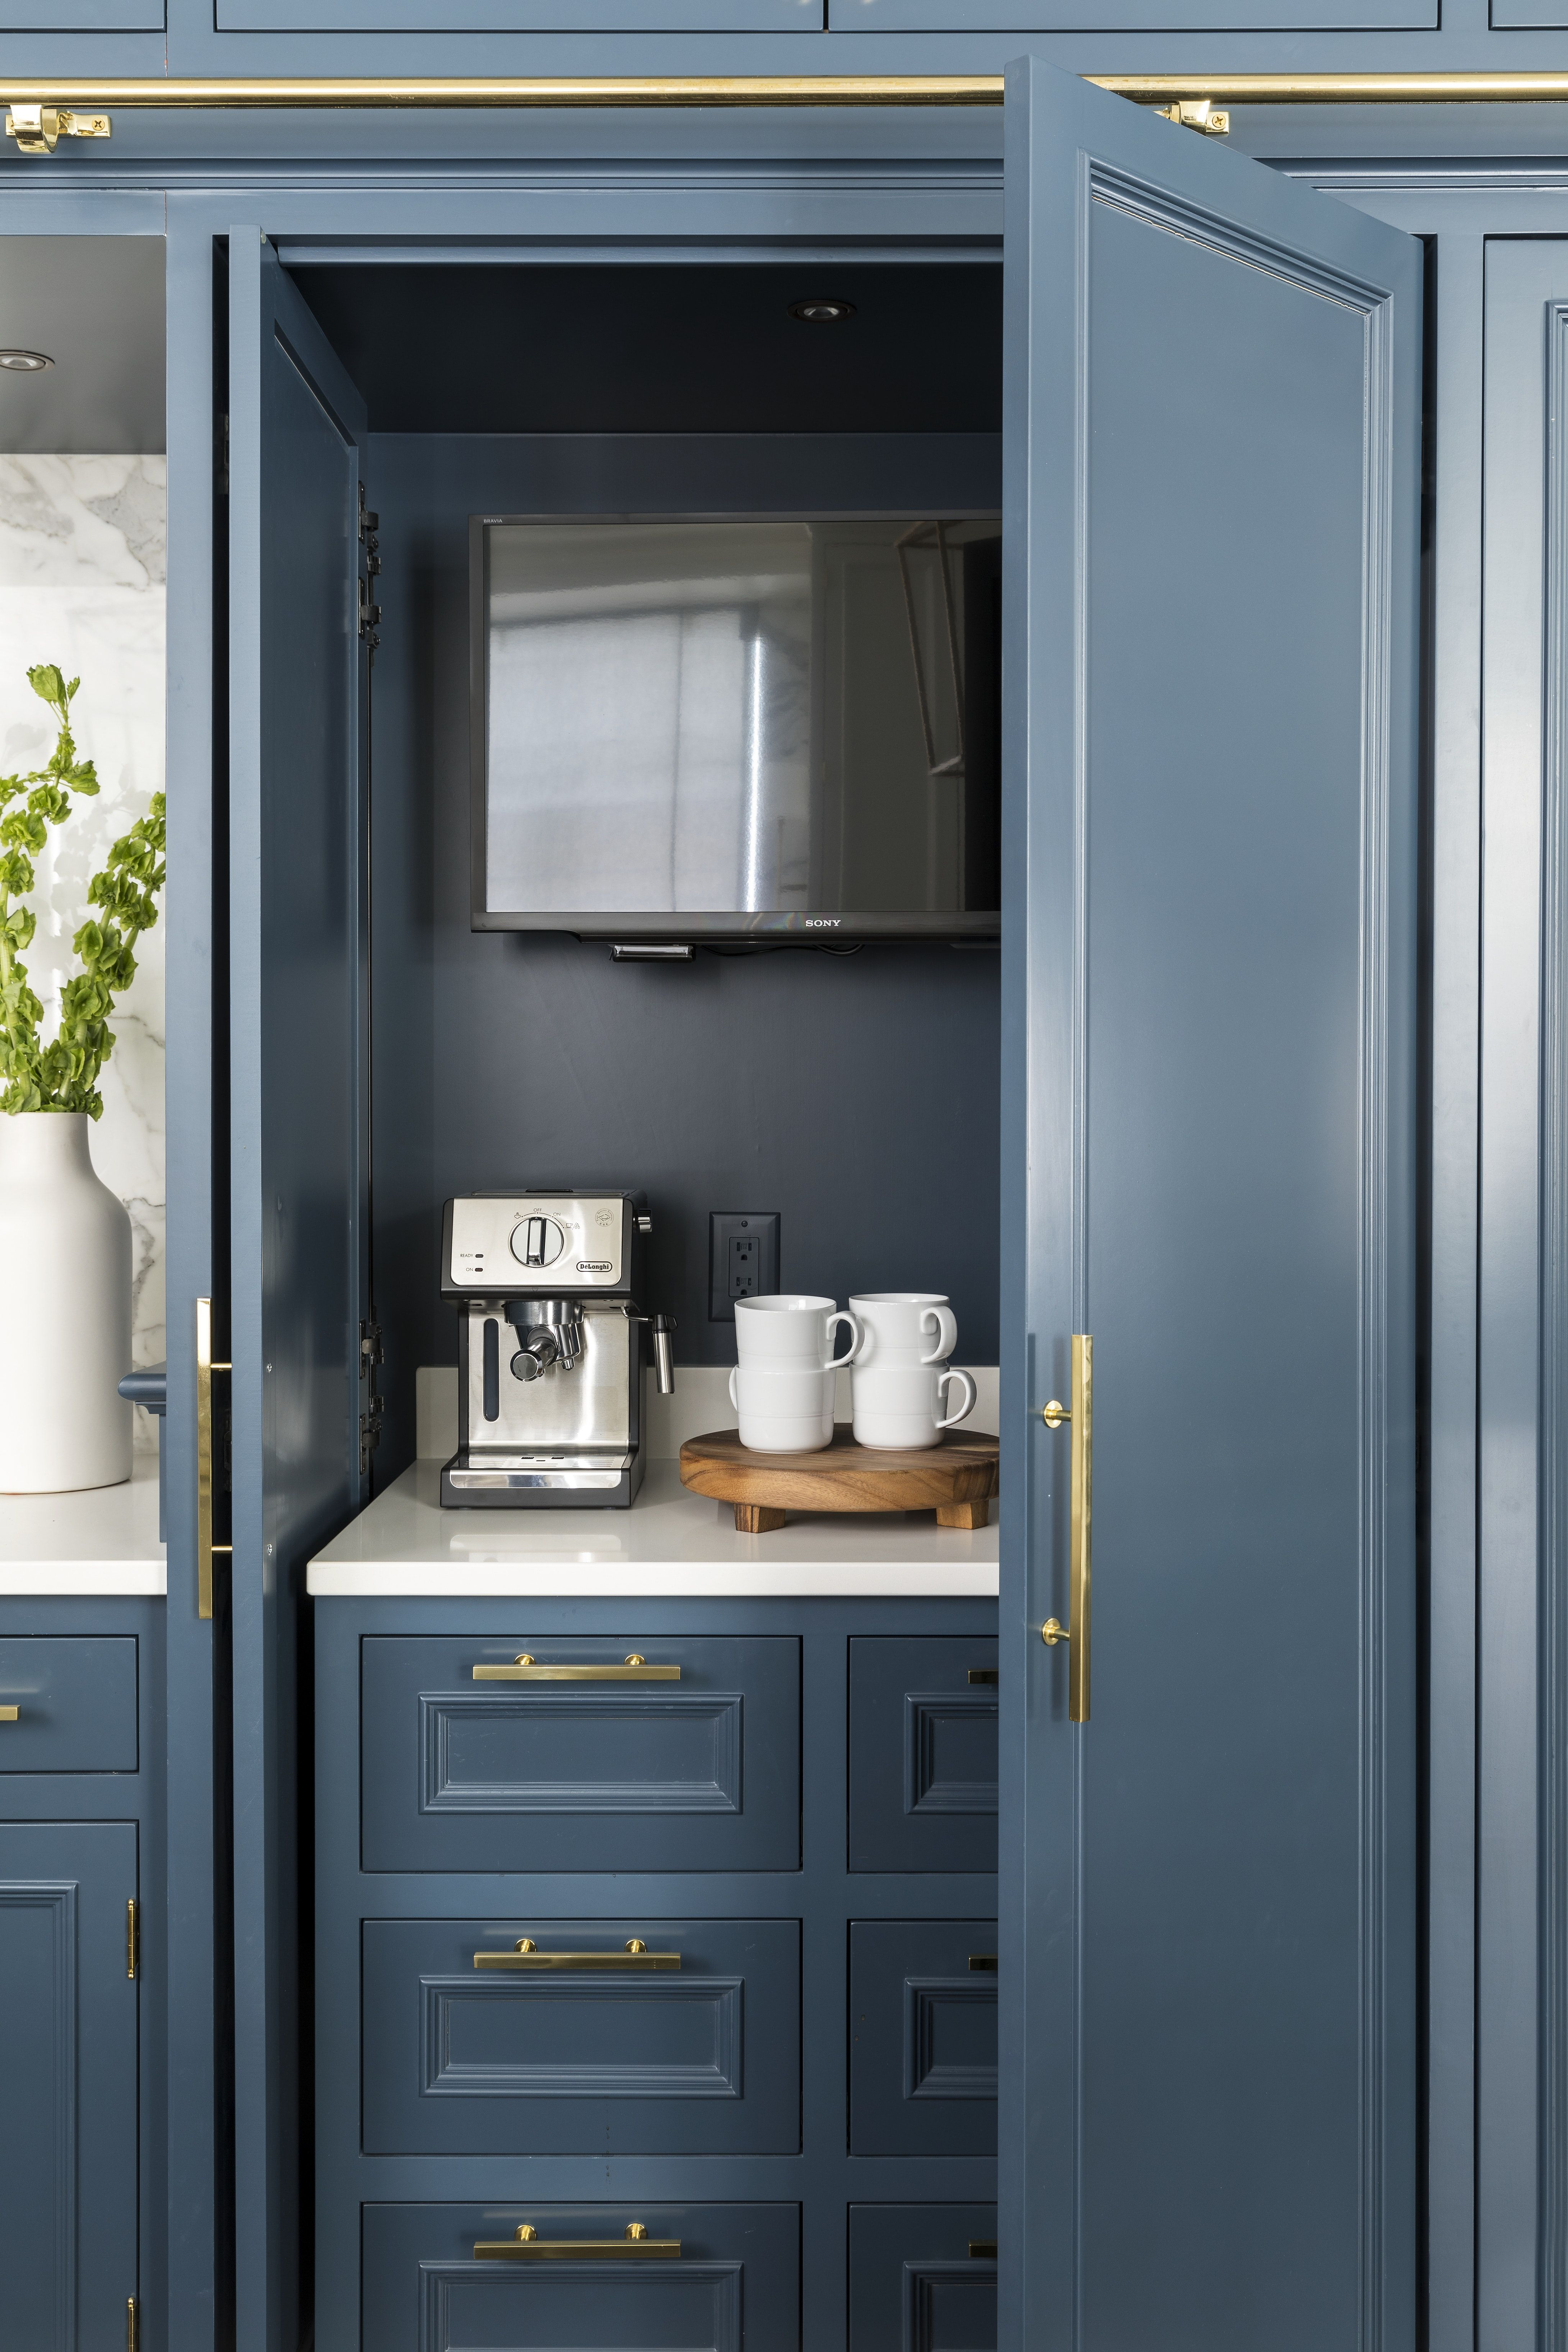 Retracting Indigo Blue Cabinetry Doors Reveal A Coffee Bar In This Kitchen